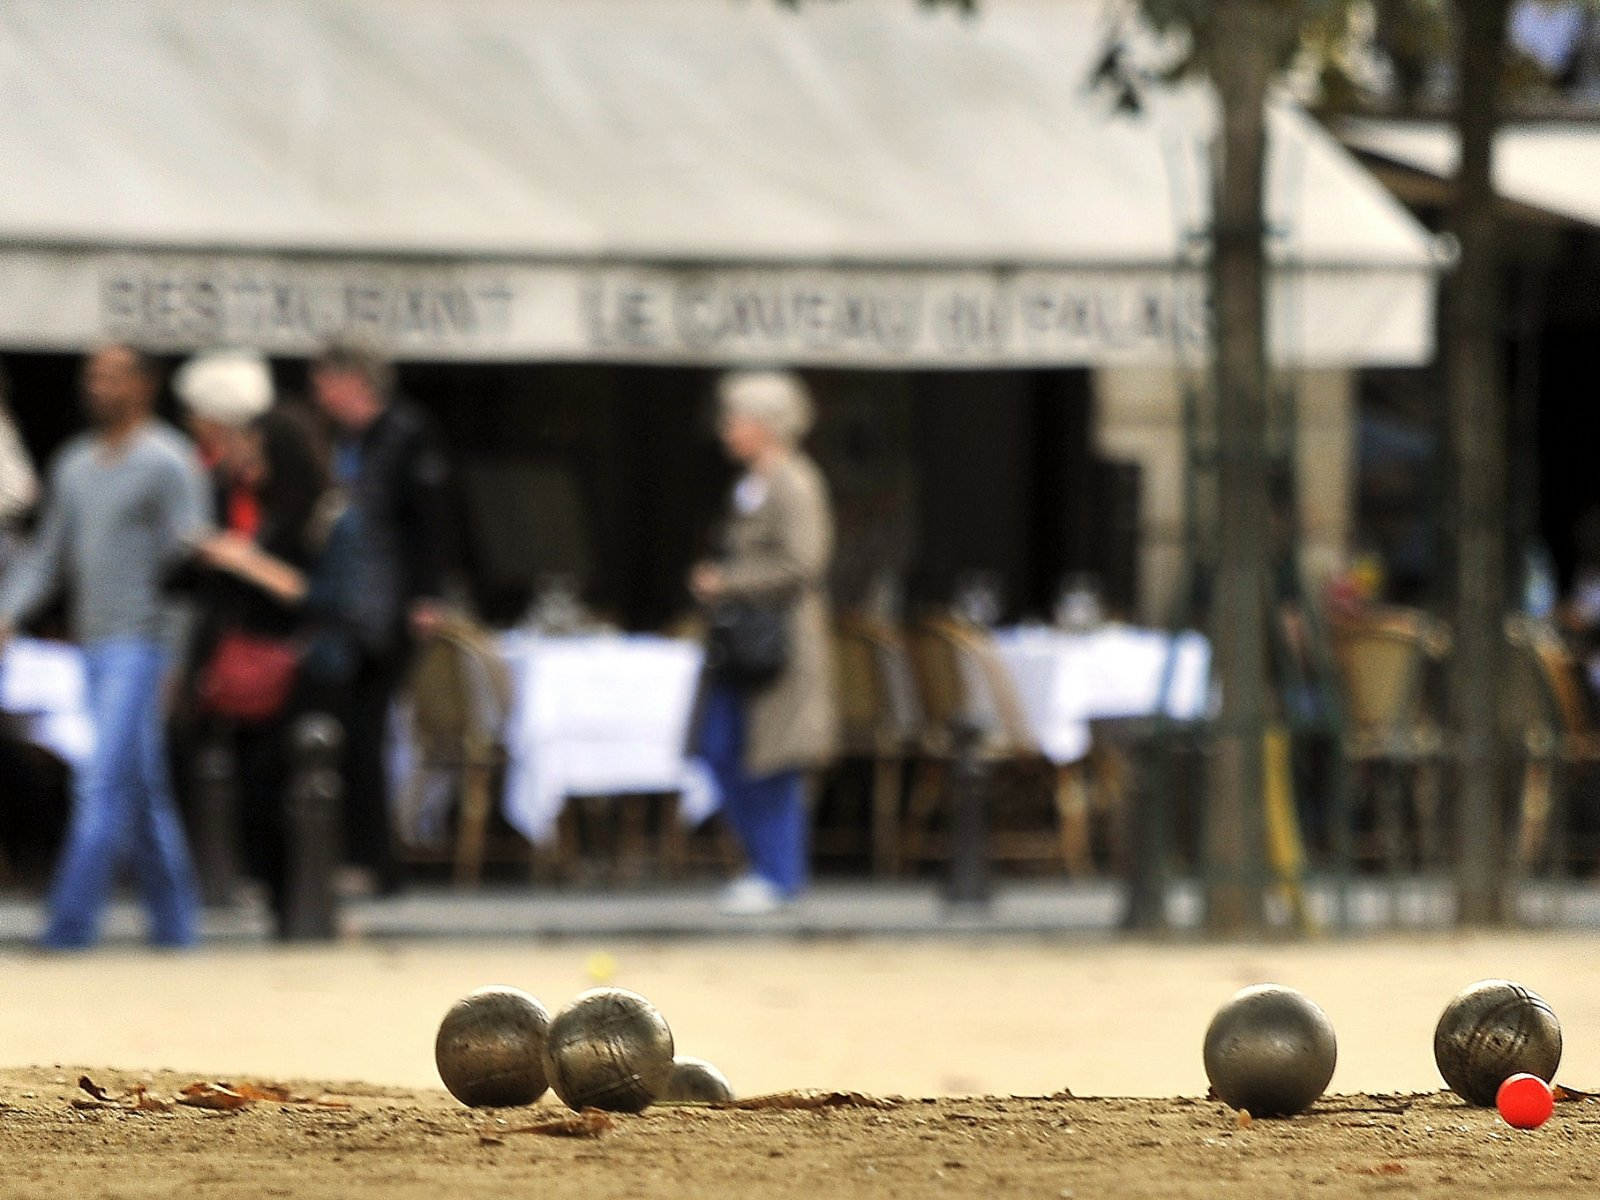 How to play petanque in Paris